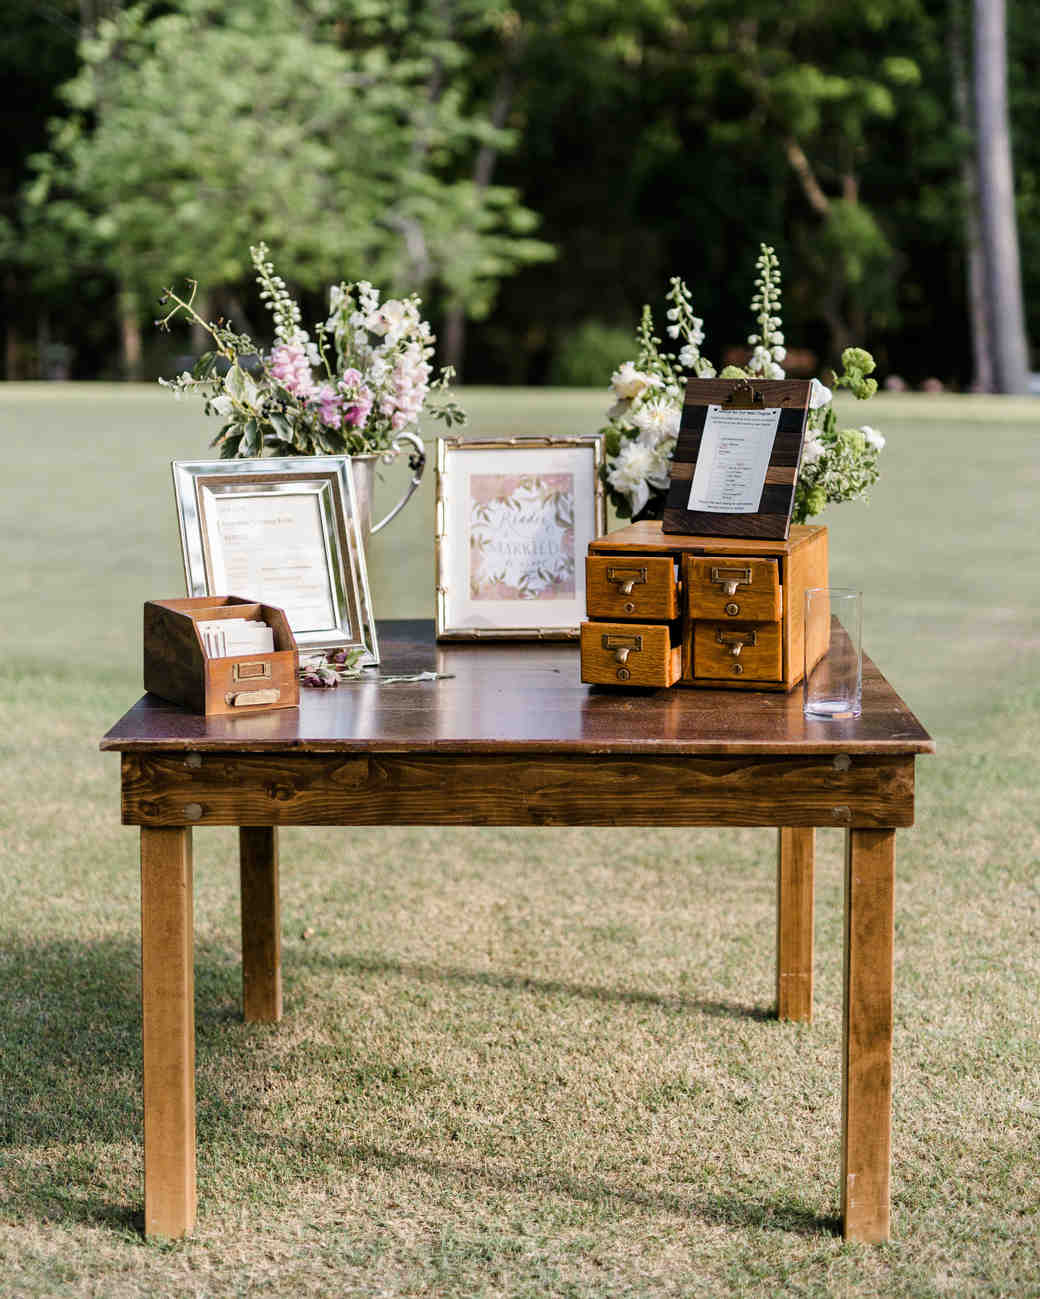 Alternative Wedding Guest Book Ideas: Unique Wedding Guest Book Ideas That Aren't Actually Books